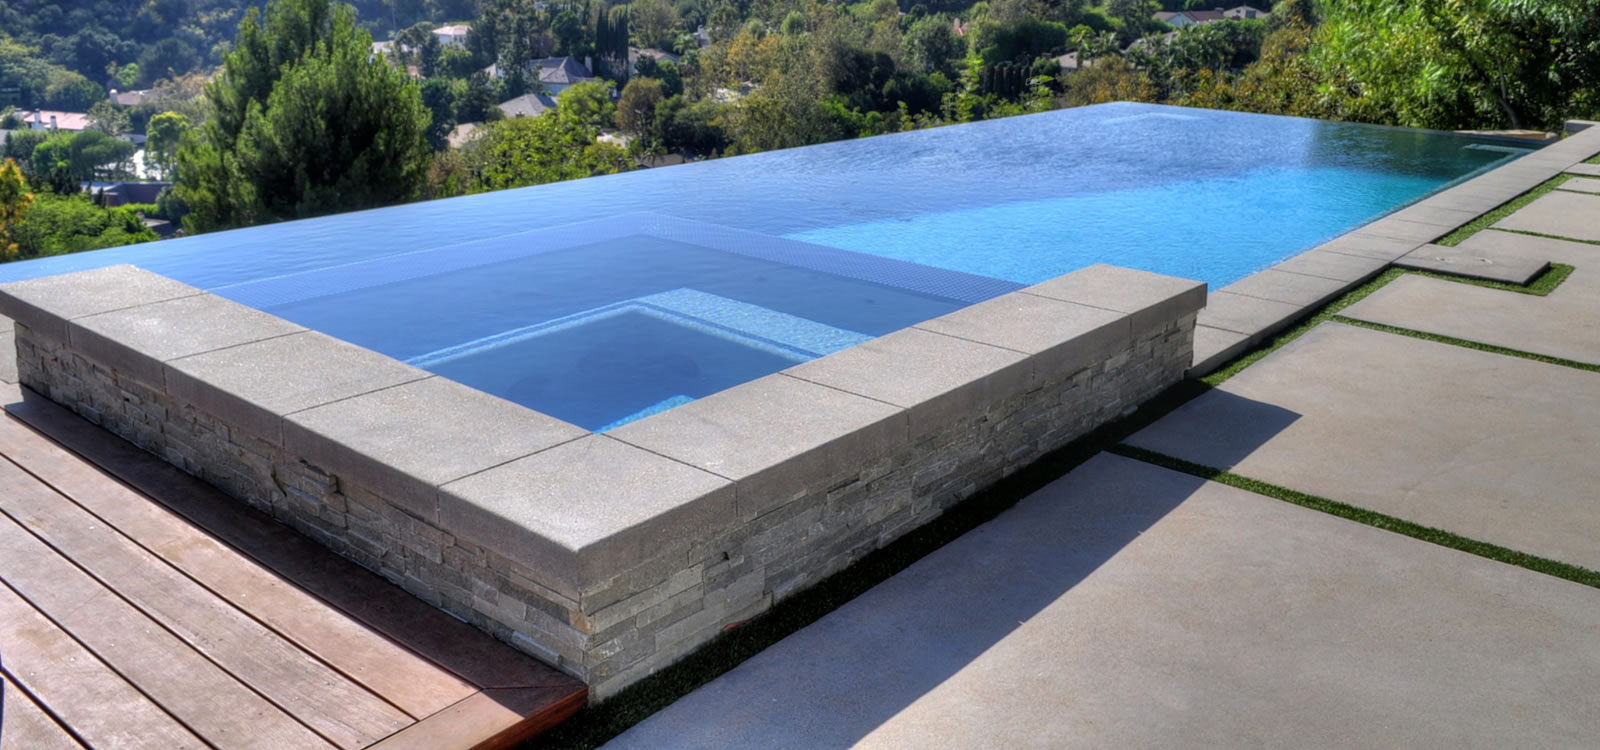 Beverly Hills Vanishing Edge Pool Designer